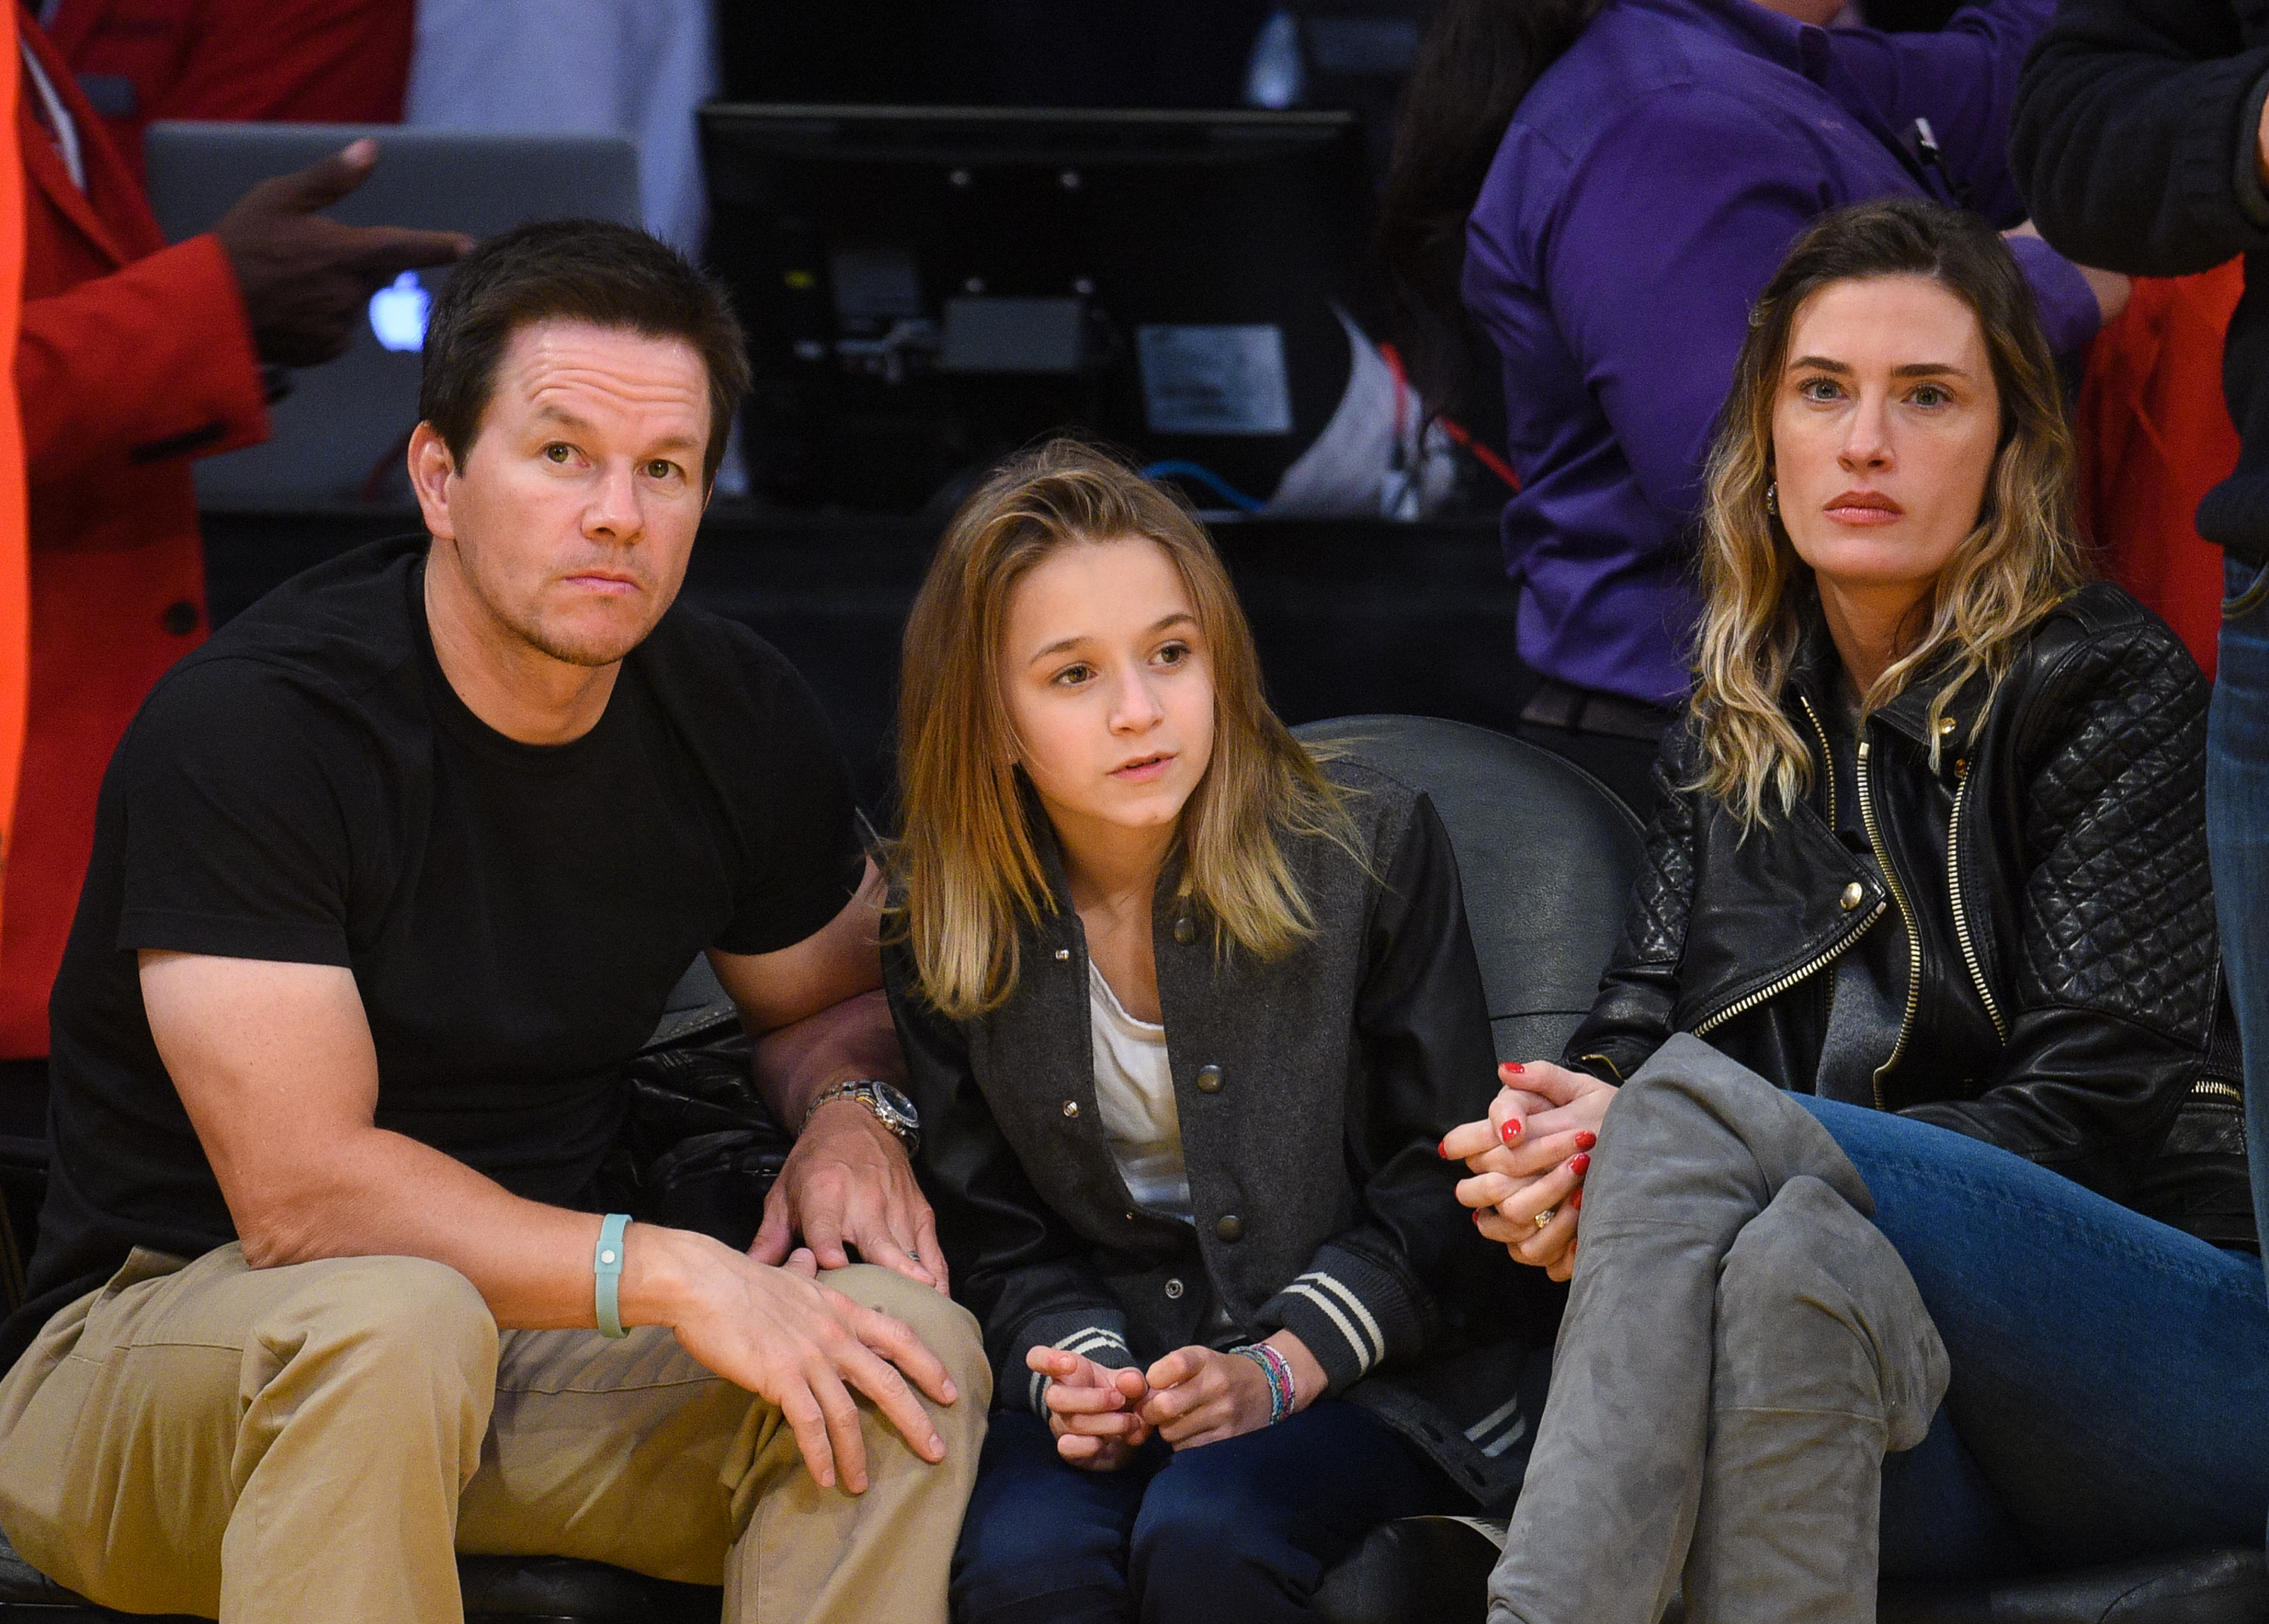 Mark Wahlberg won't let his daughter date Justin Bieber which is totally unfair